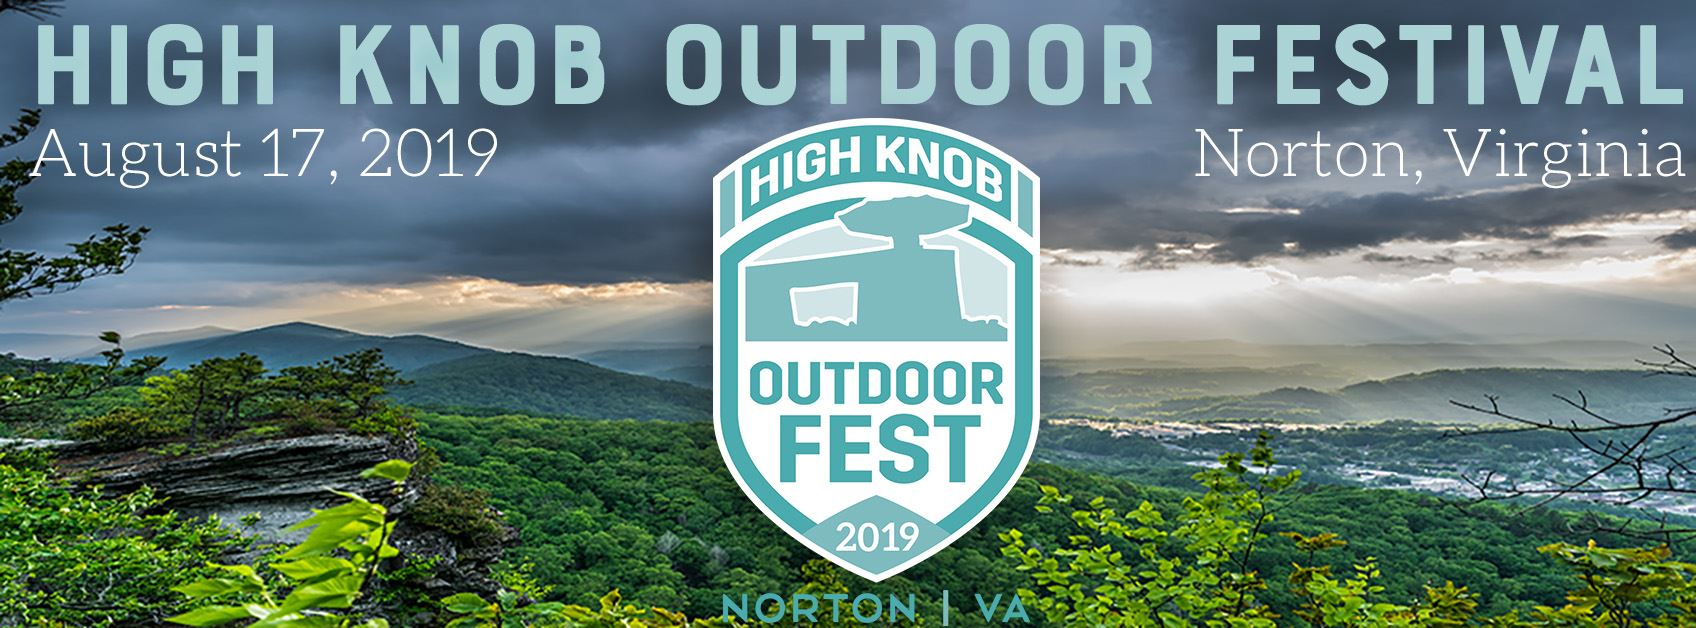 Photo of flyer for High Knob Outdoor Festival